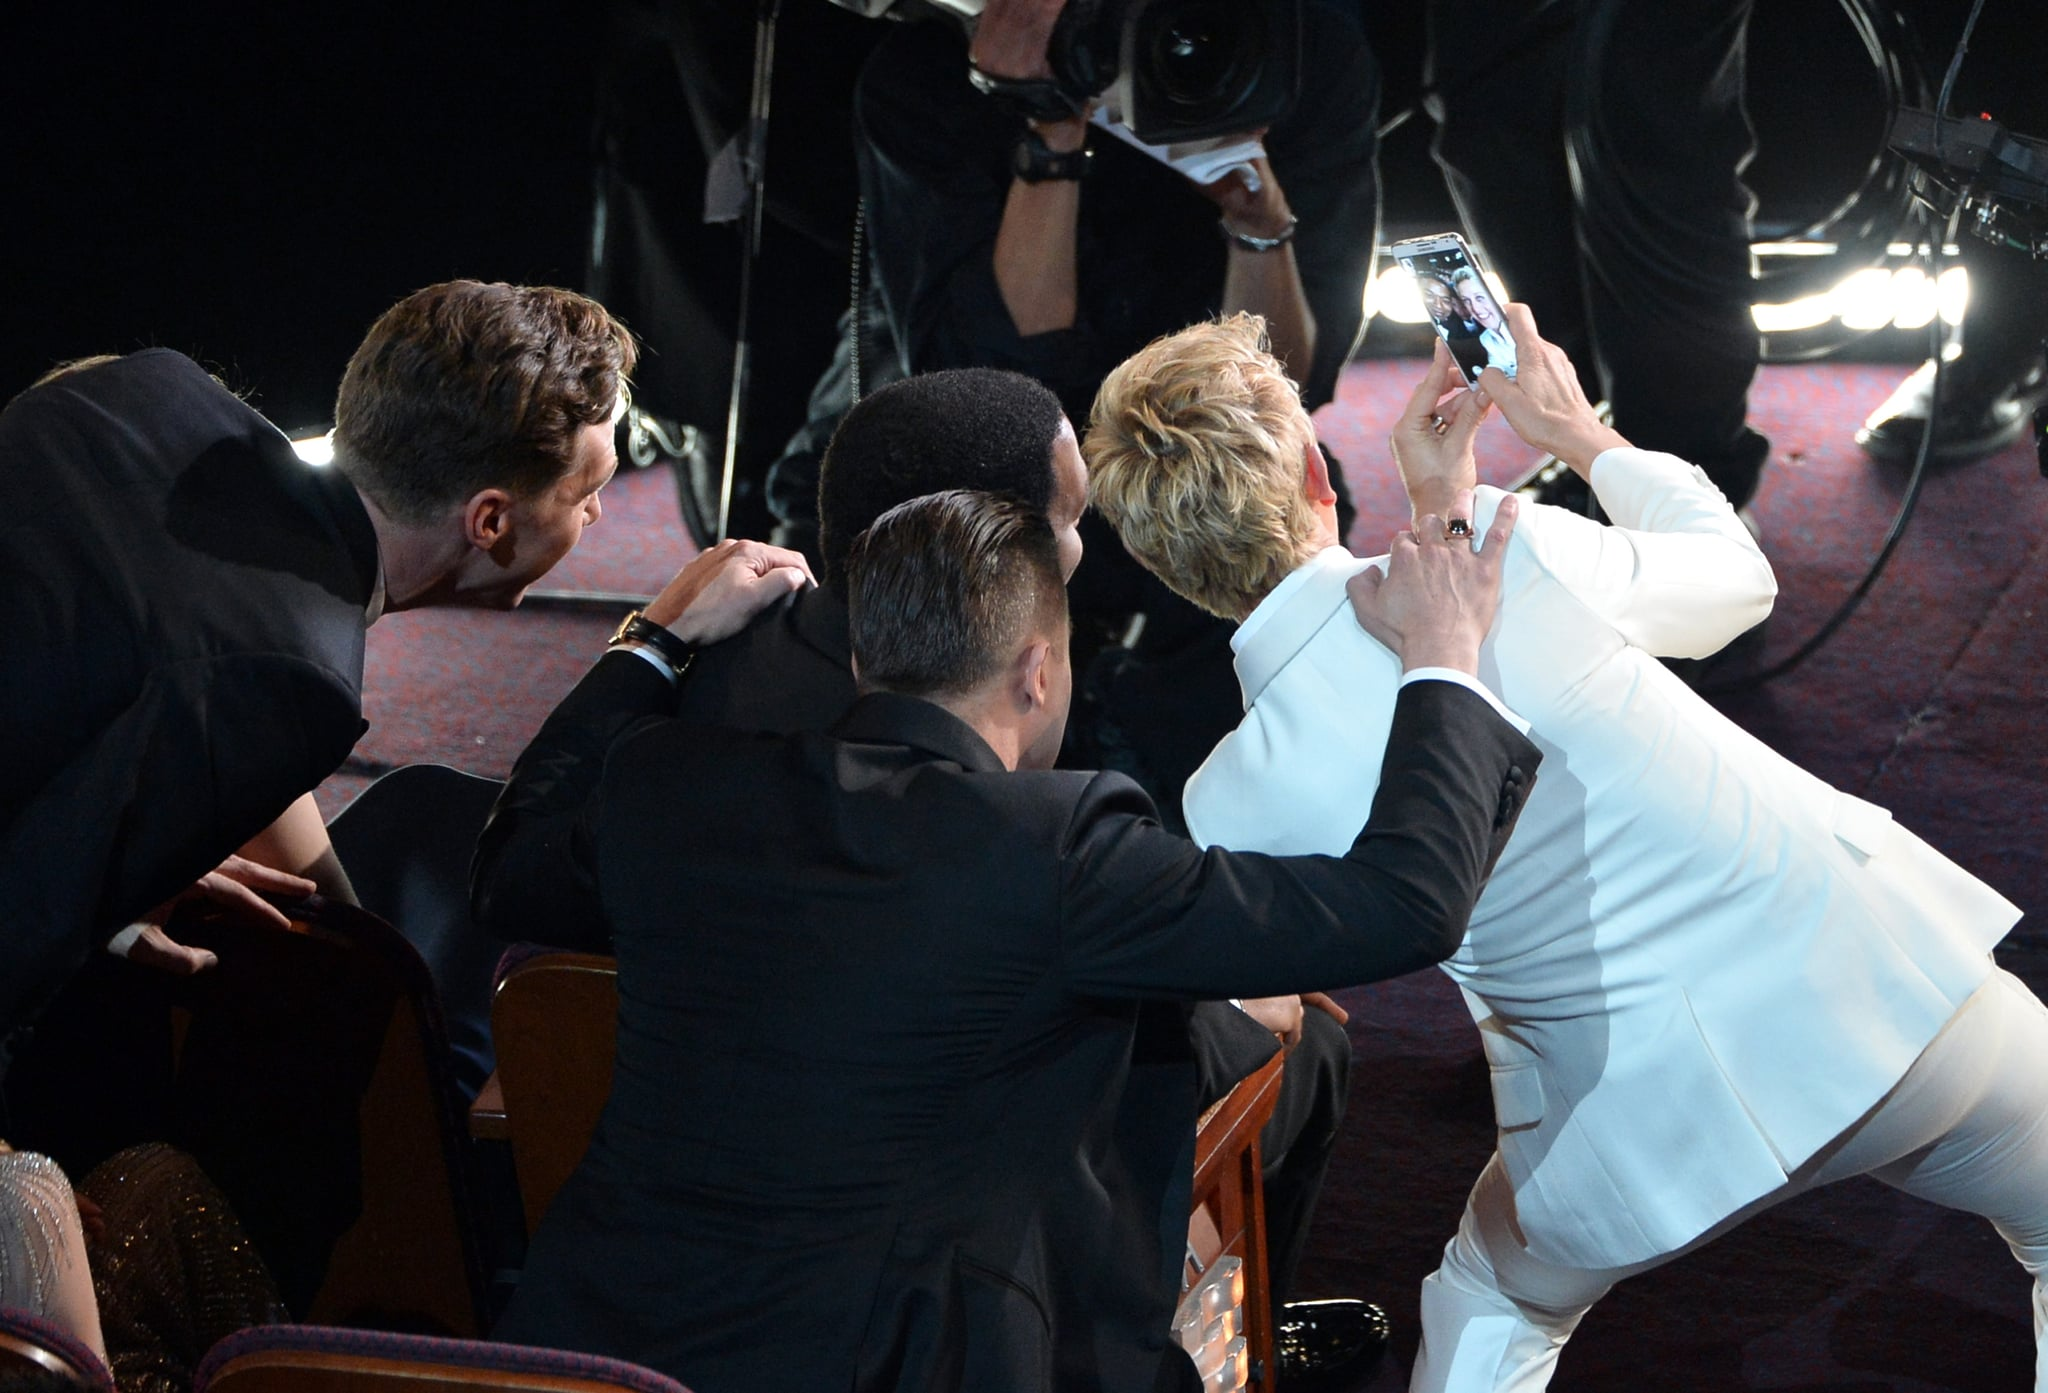 Ellen DeGeneres took a selfie with Brad Pitt and Chiwetel Ejiofor at the Oscars in March 2014.